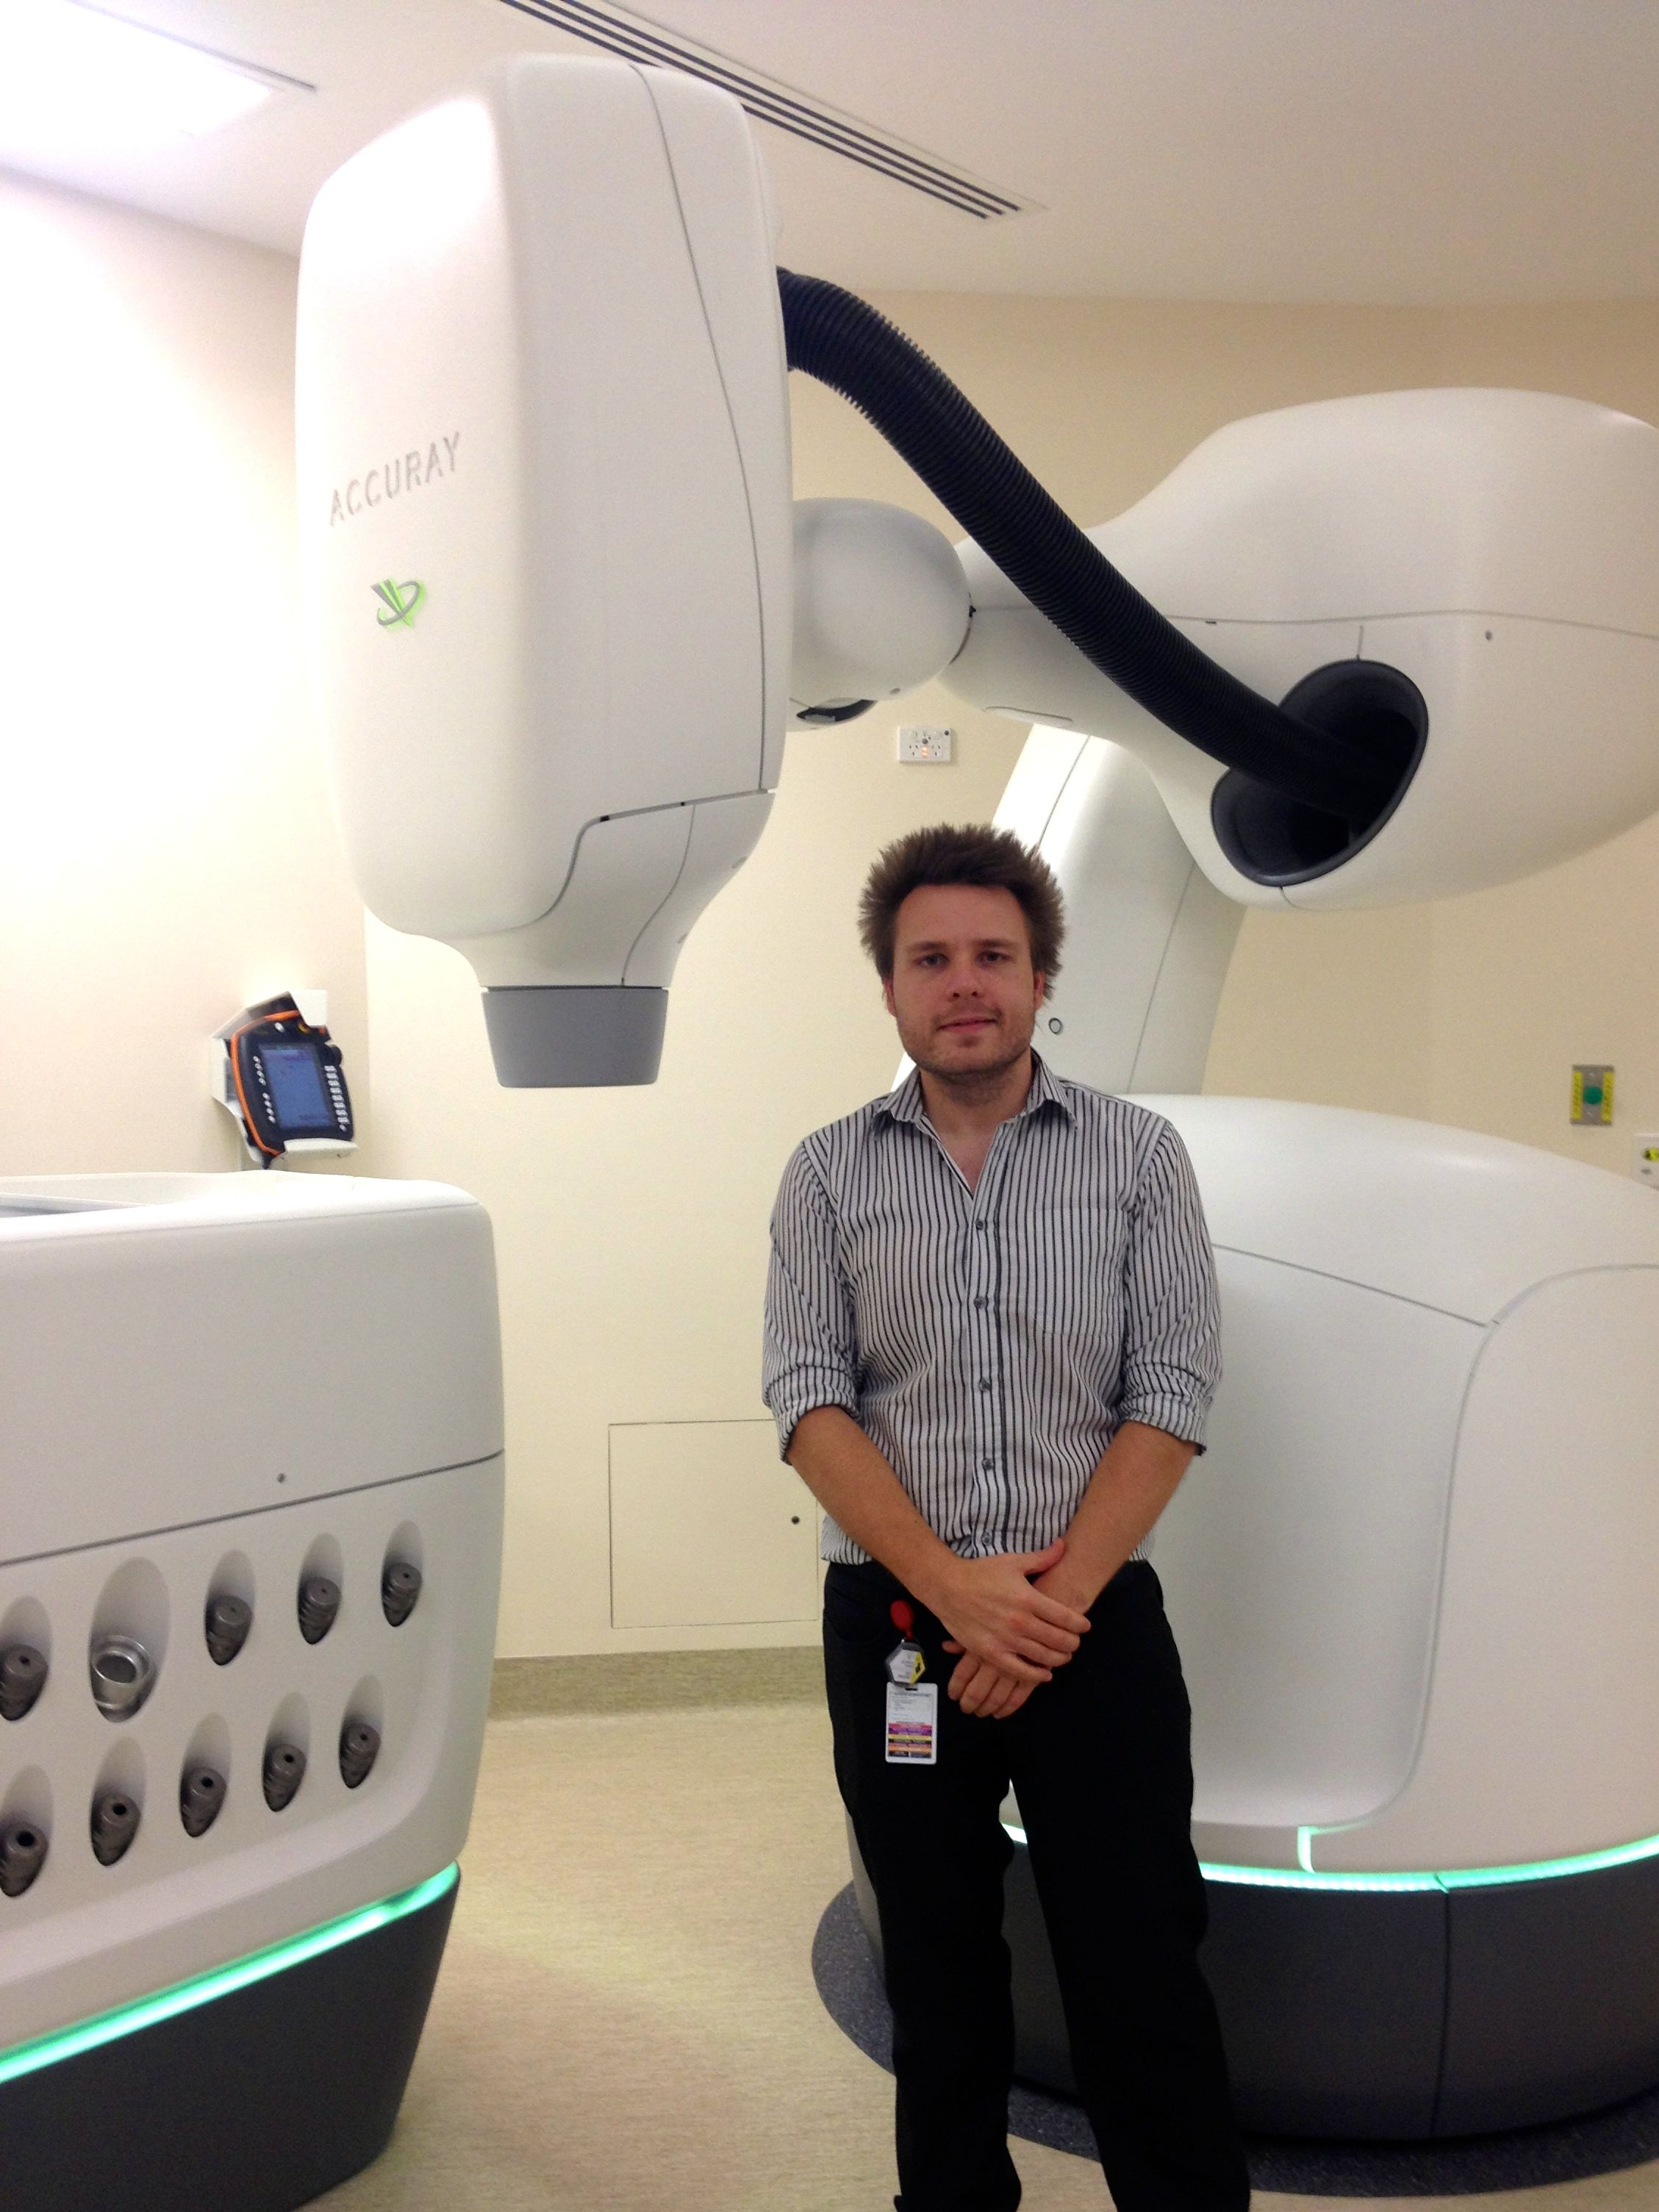 CyberKnife and medical physicist Jonathan Lane